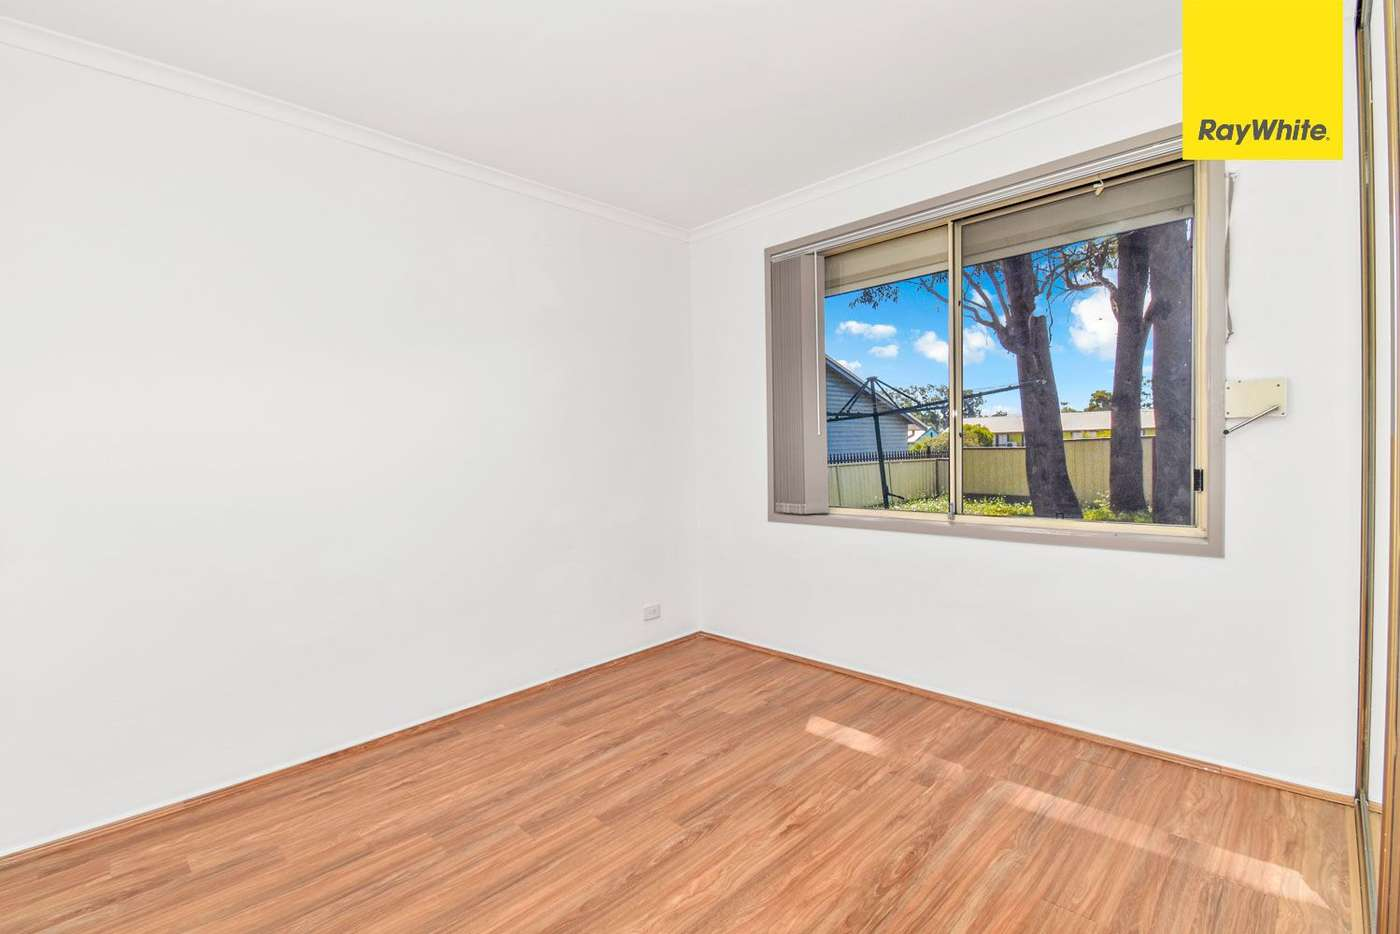 Seventh view of Homely house listing, 14 Alan Street, Mount Druitt NSW 2770